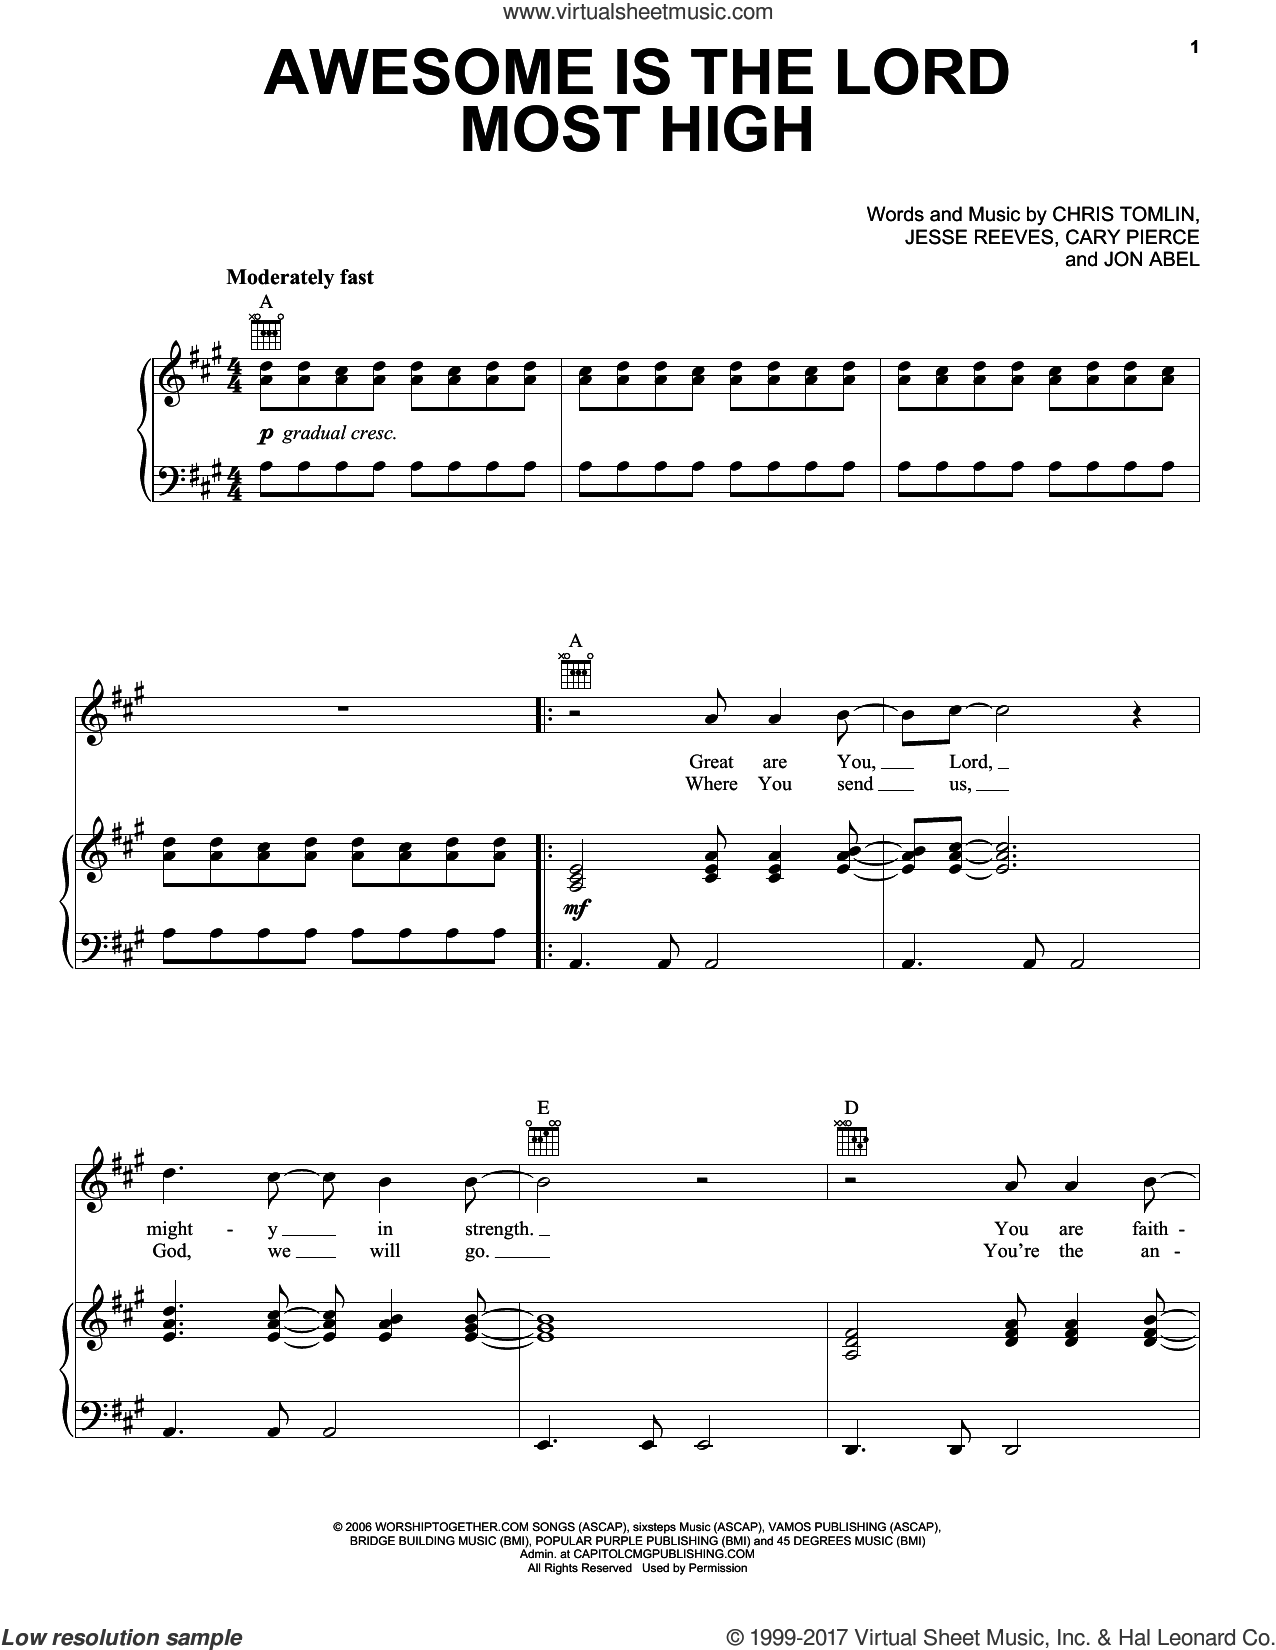 Awesome Is The Lord Most High sheet music for voice, piano or guitar by Chris Tomlin, Brenton Brown, Cary Pierce, Jesse Reeves and Jon Abel, intermediate. Score Image Preview.